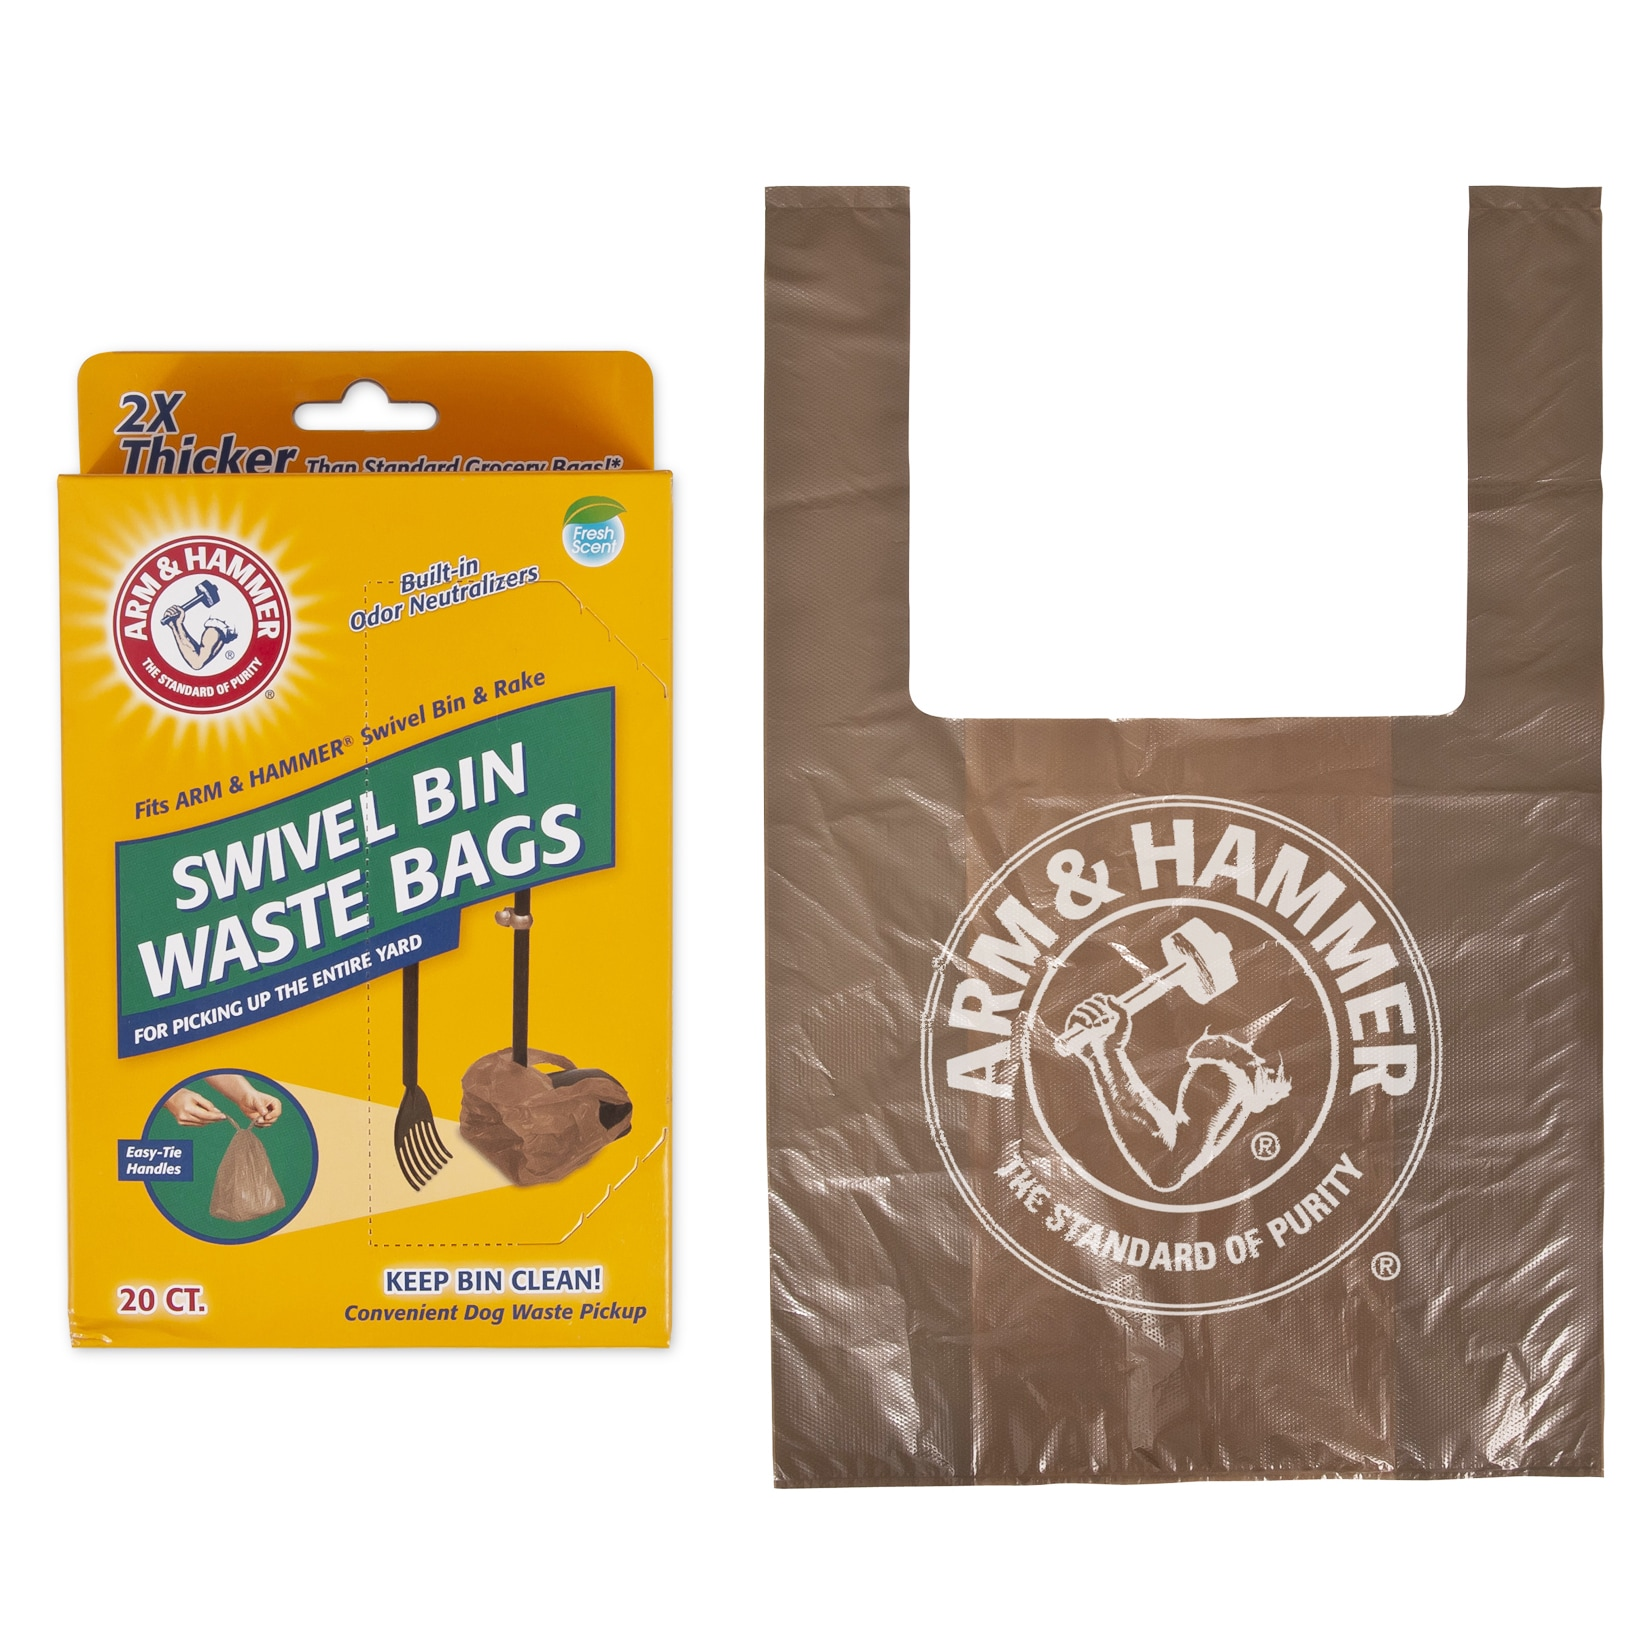 Arm & Hammer Pet Disposable Handle Tie Waste Bags 20 Coun...